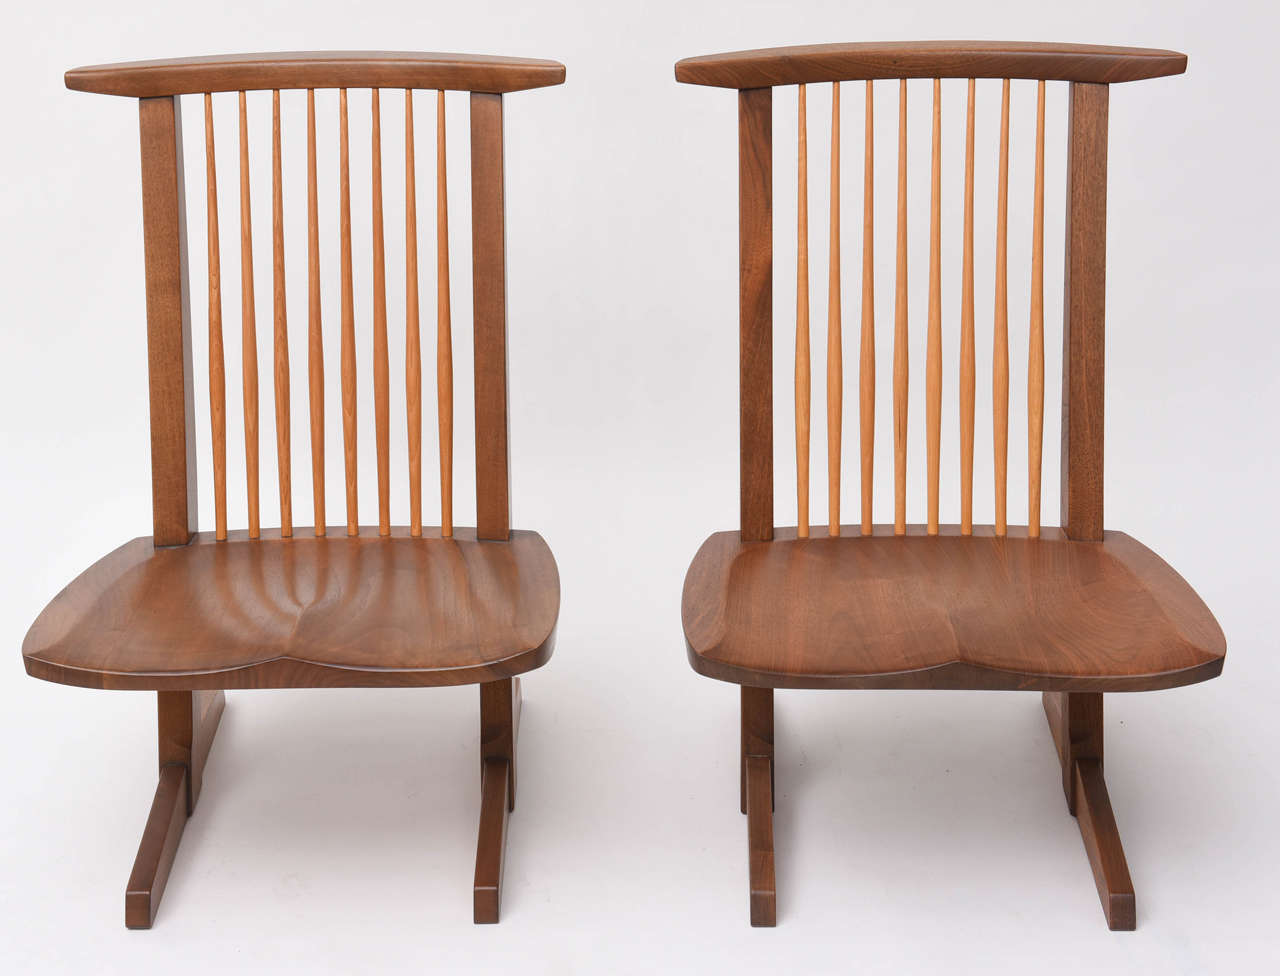 George Nakashima Conoid low chairs. A rarely seen design from the studio.